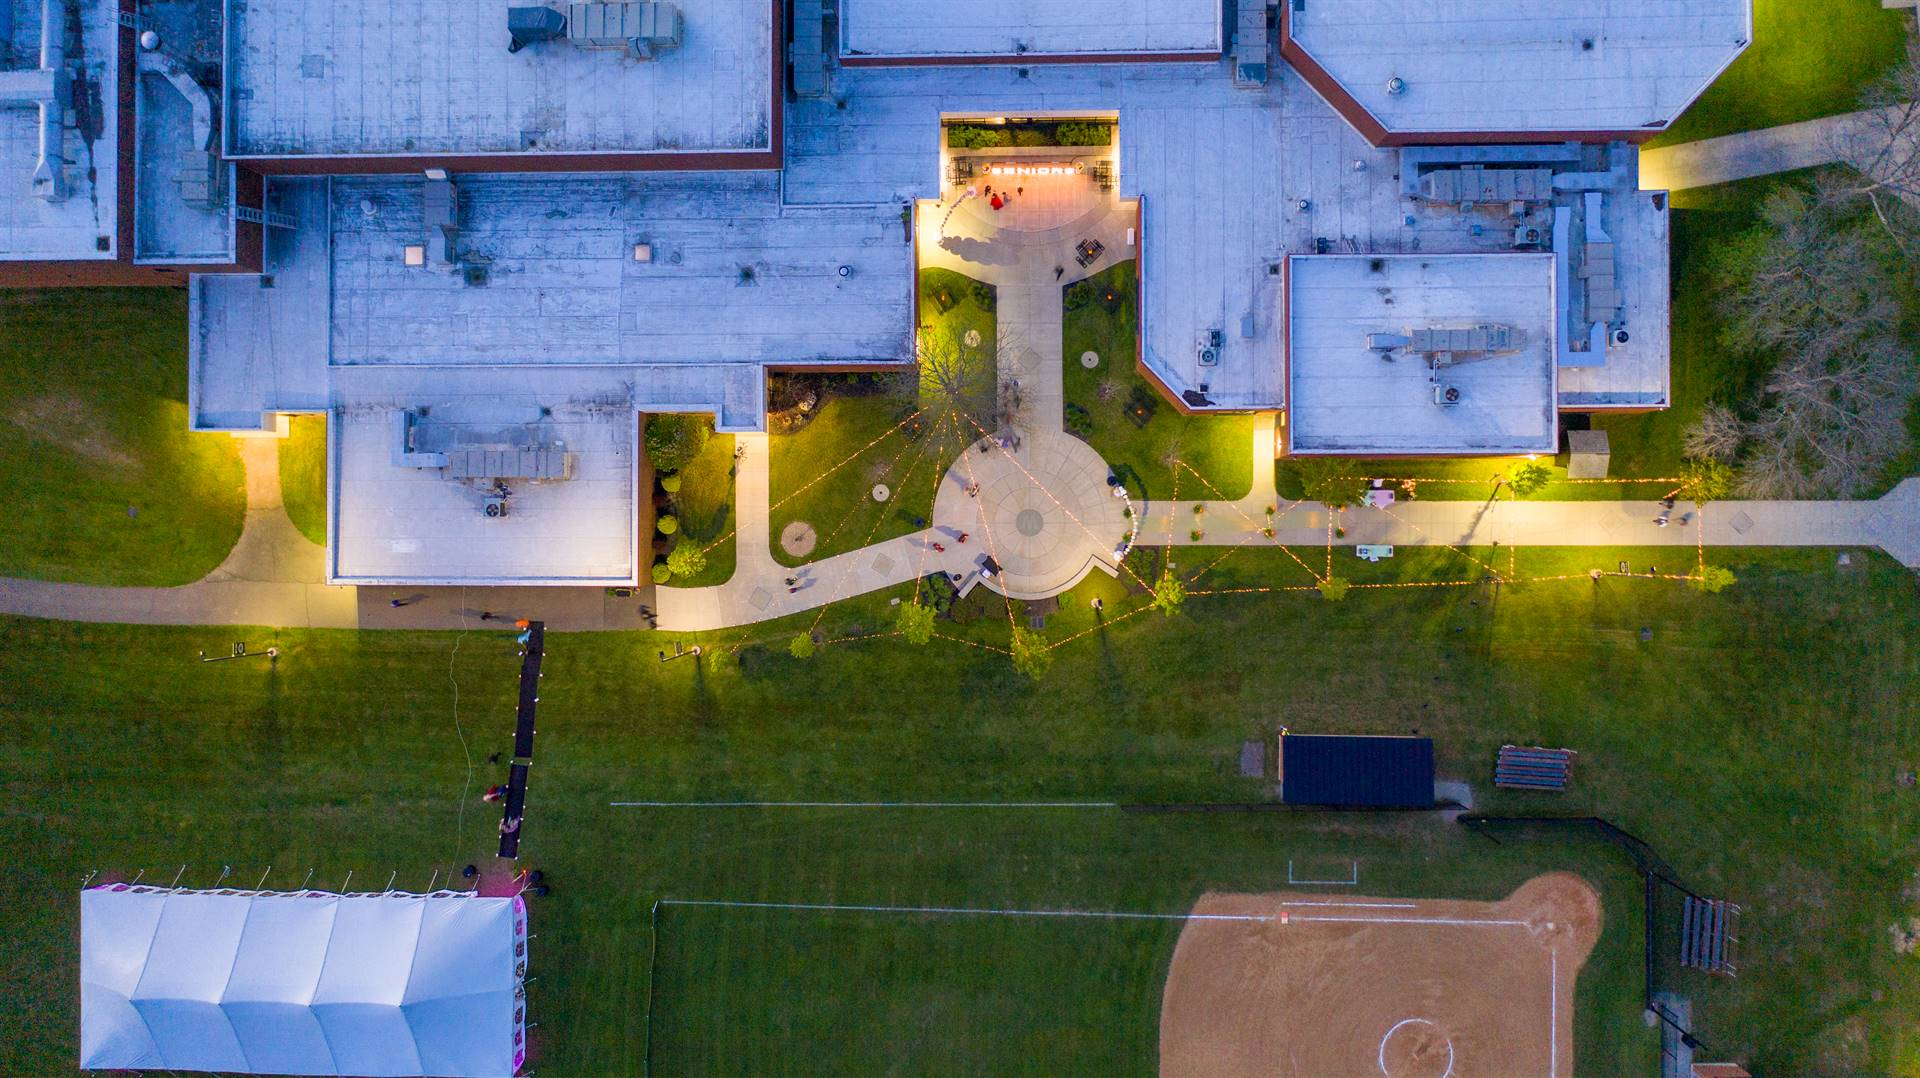 Bird's eye view of WCHS building and tent on field